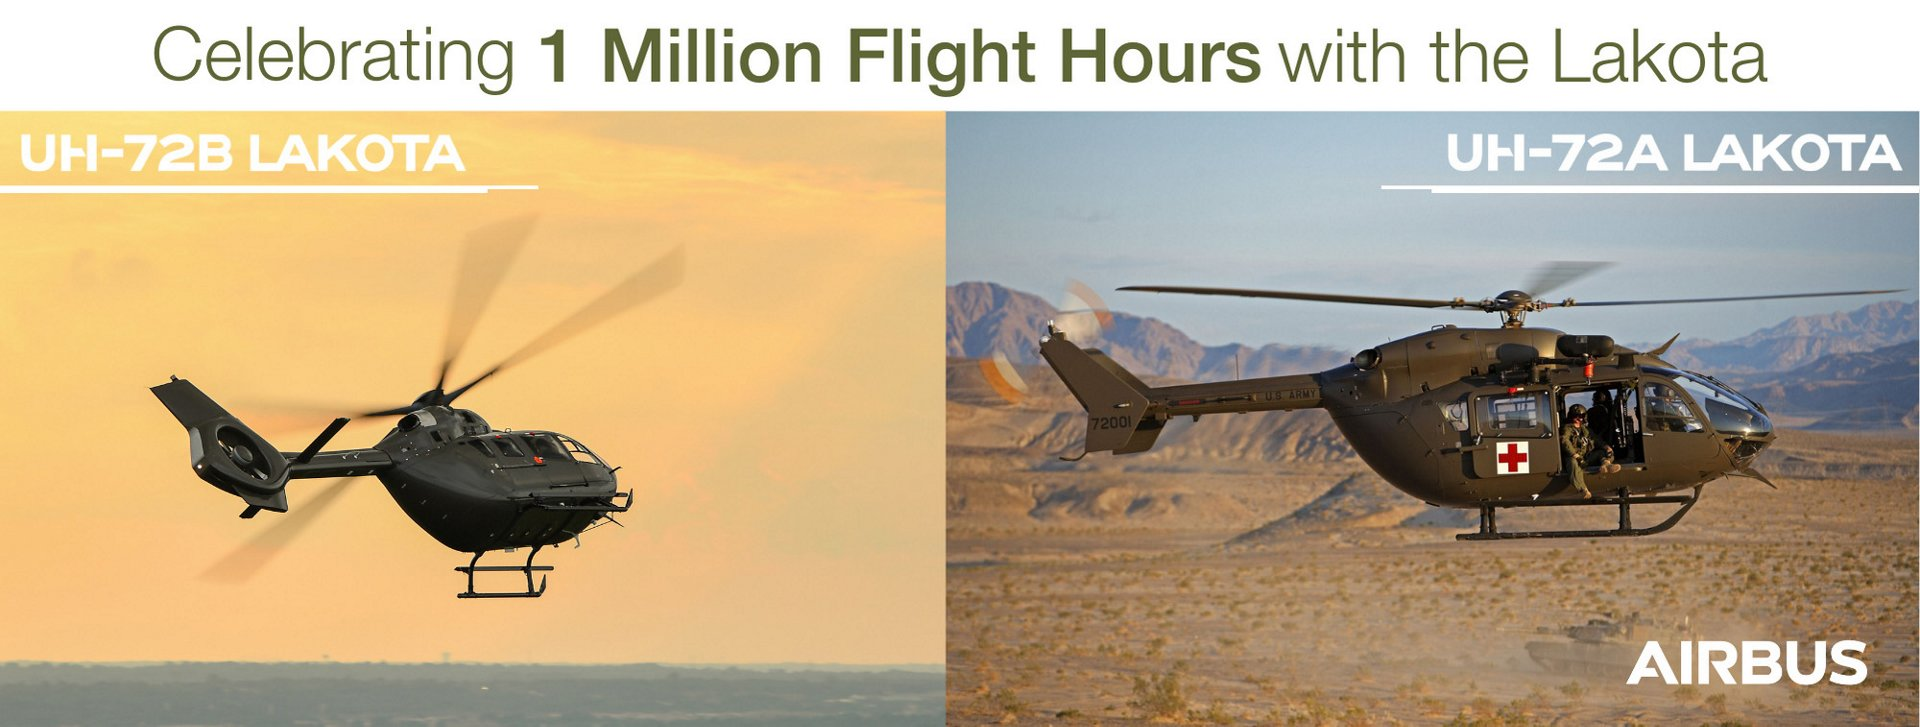 The Airbus Helicopters UH-72 Lakota fleet has exceeded the 1 million flight-hour mark, some 15 years after the first Lakota UH-72A entered service for the U.S.